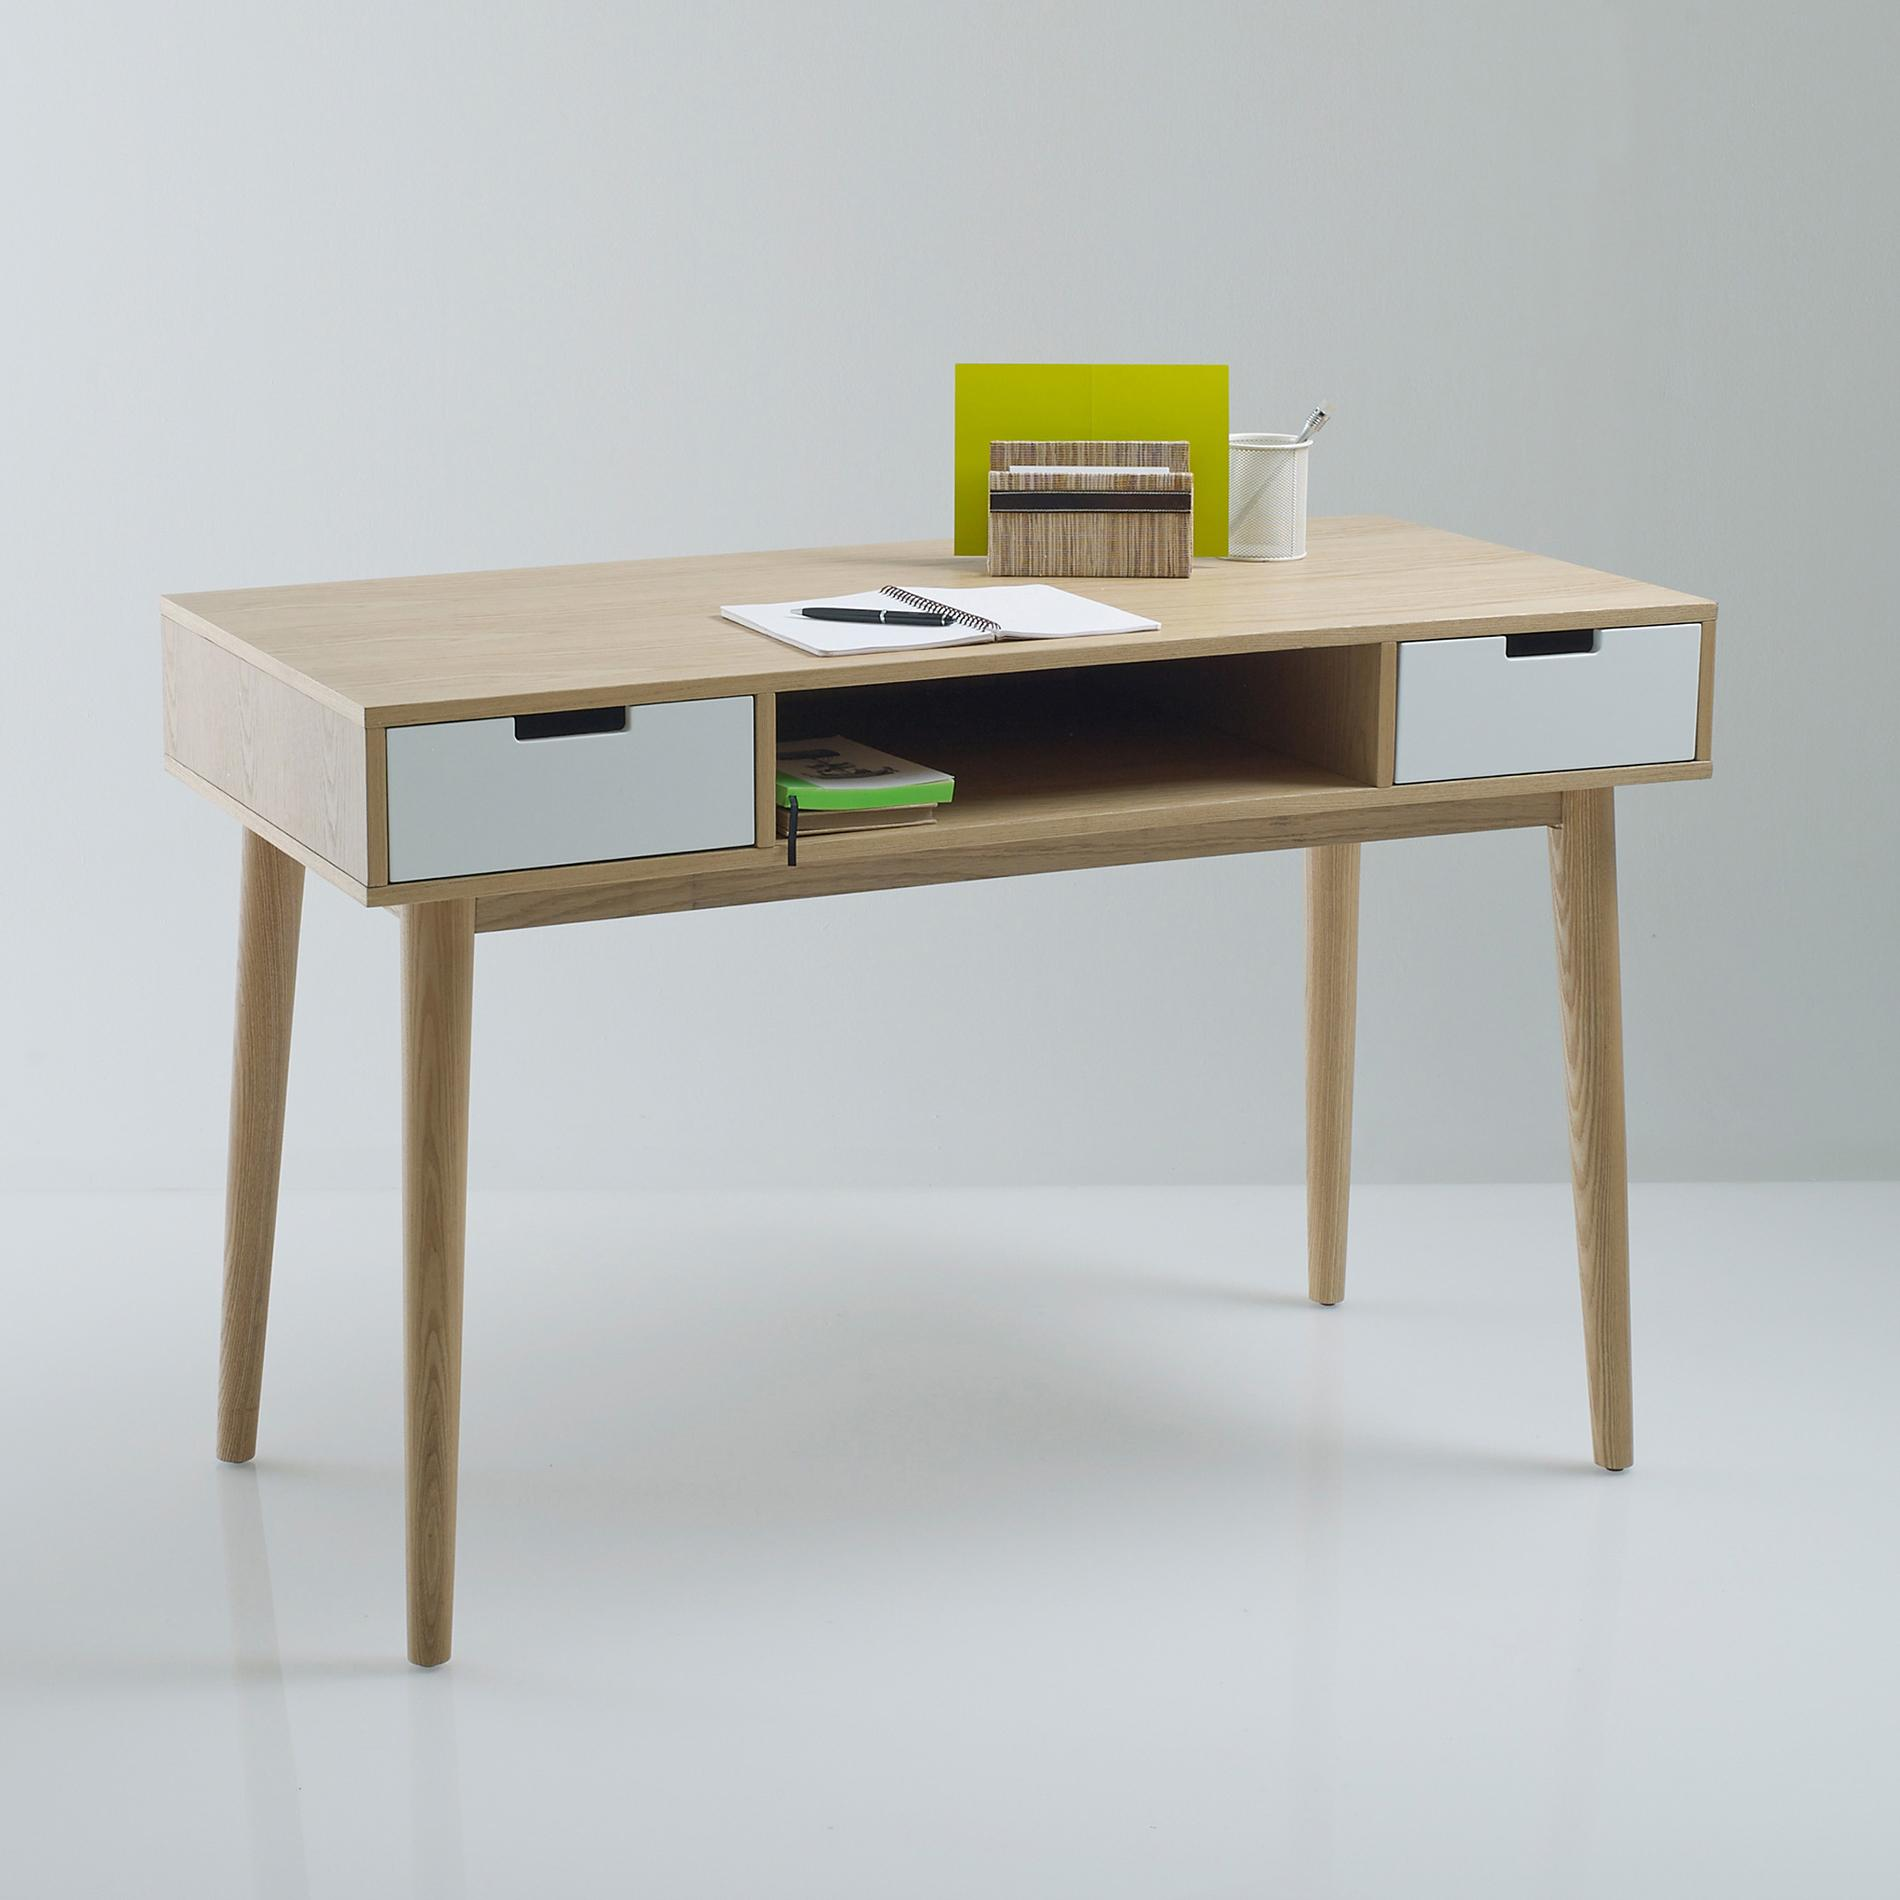 Home office 10 fa ons d am nager un joli coin bureau for Bureau de maison design